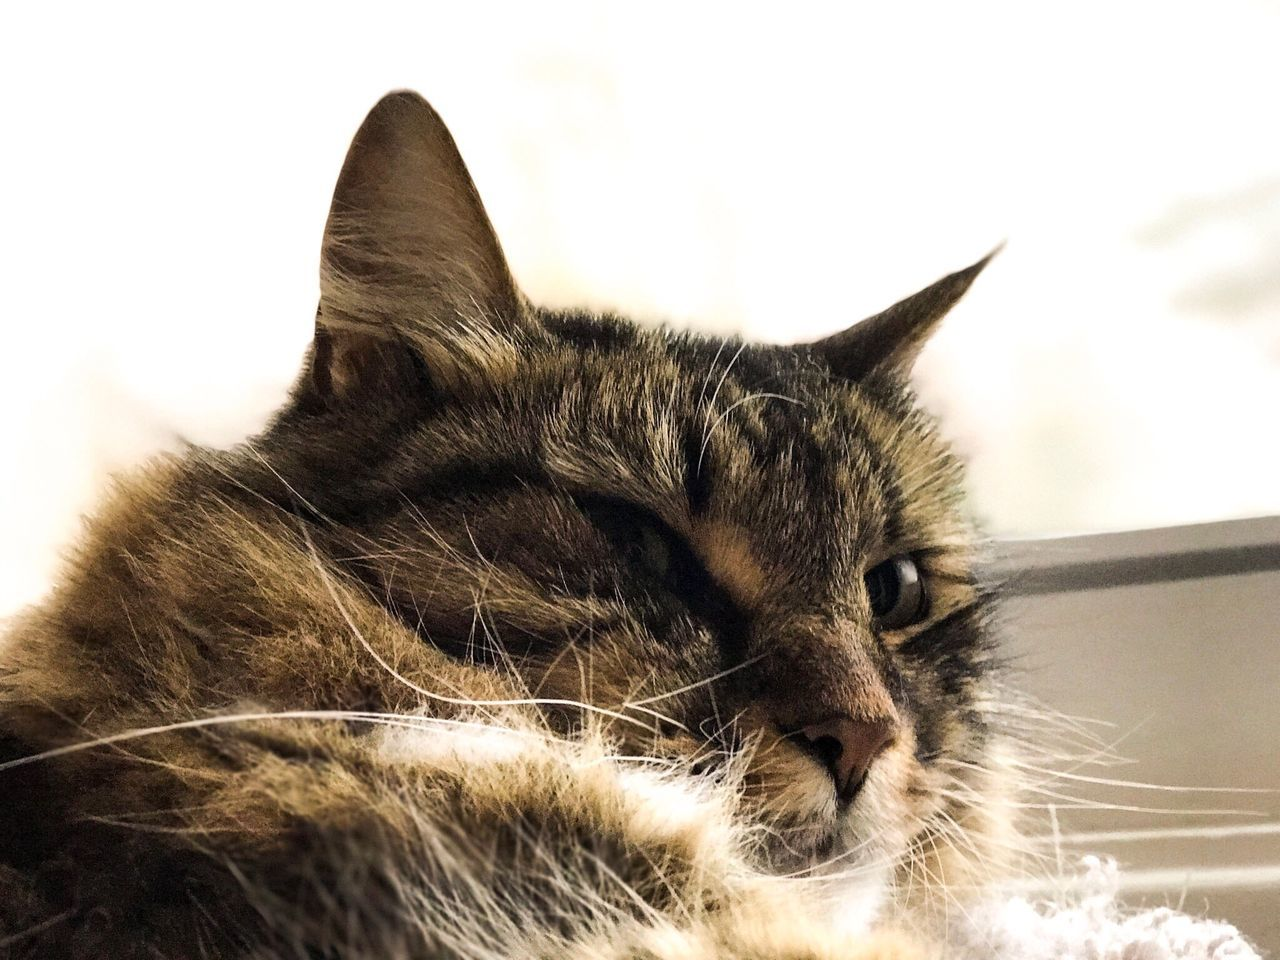 Domestic Cat Domestic Animals Pets Mammal One Animal Animal Themes Feline Close-up Lying Down No People Indoors  Day Cat Cats Maine Coone Maine Coon Fuzzy Soft Fluffy Floof Fluff Cute Adorable Cozy Comfy